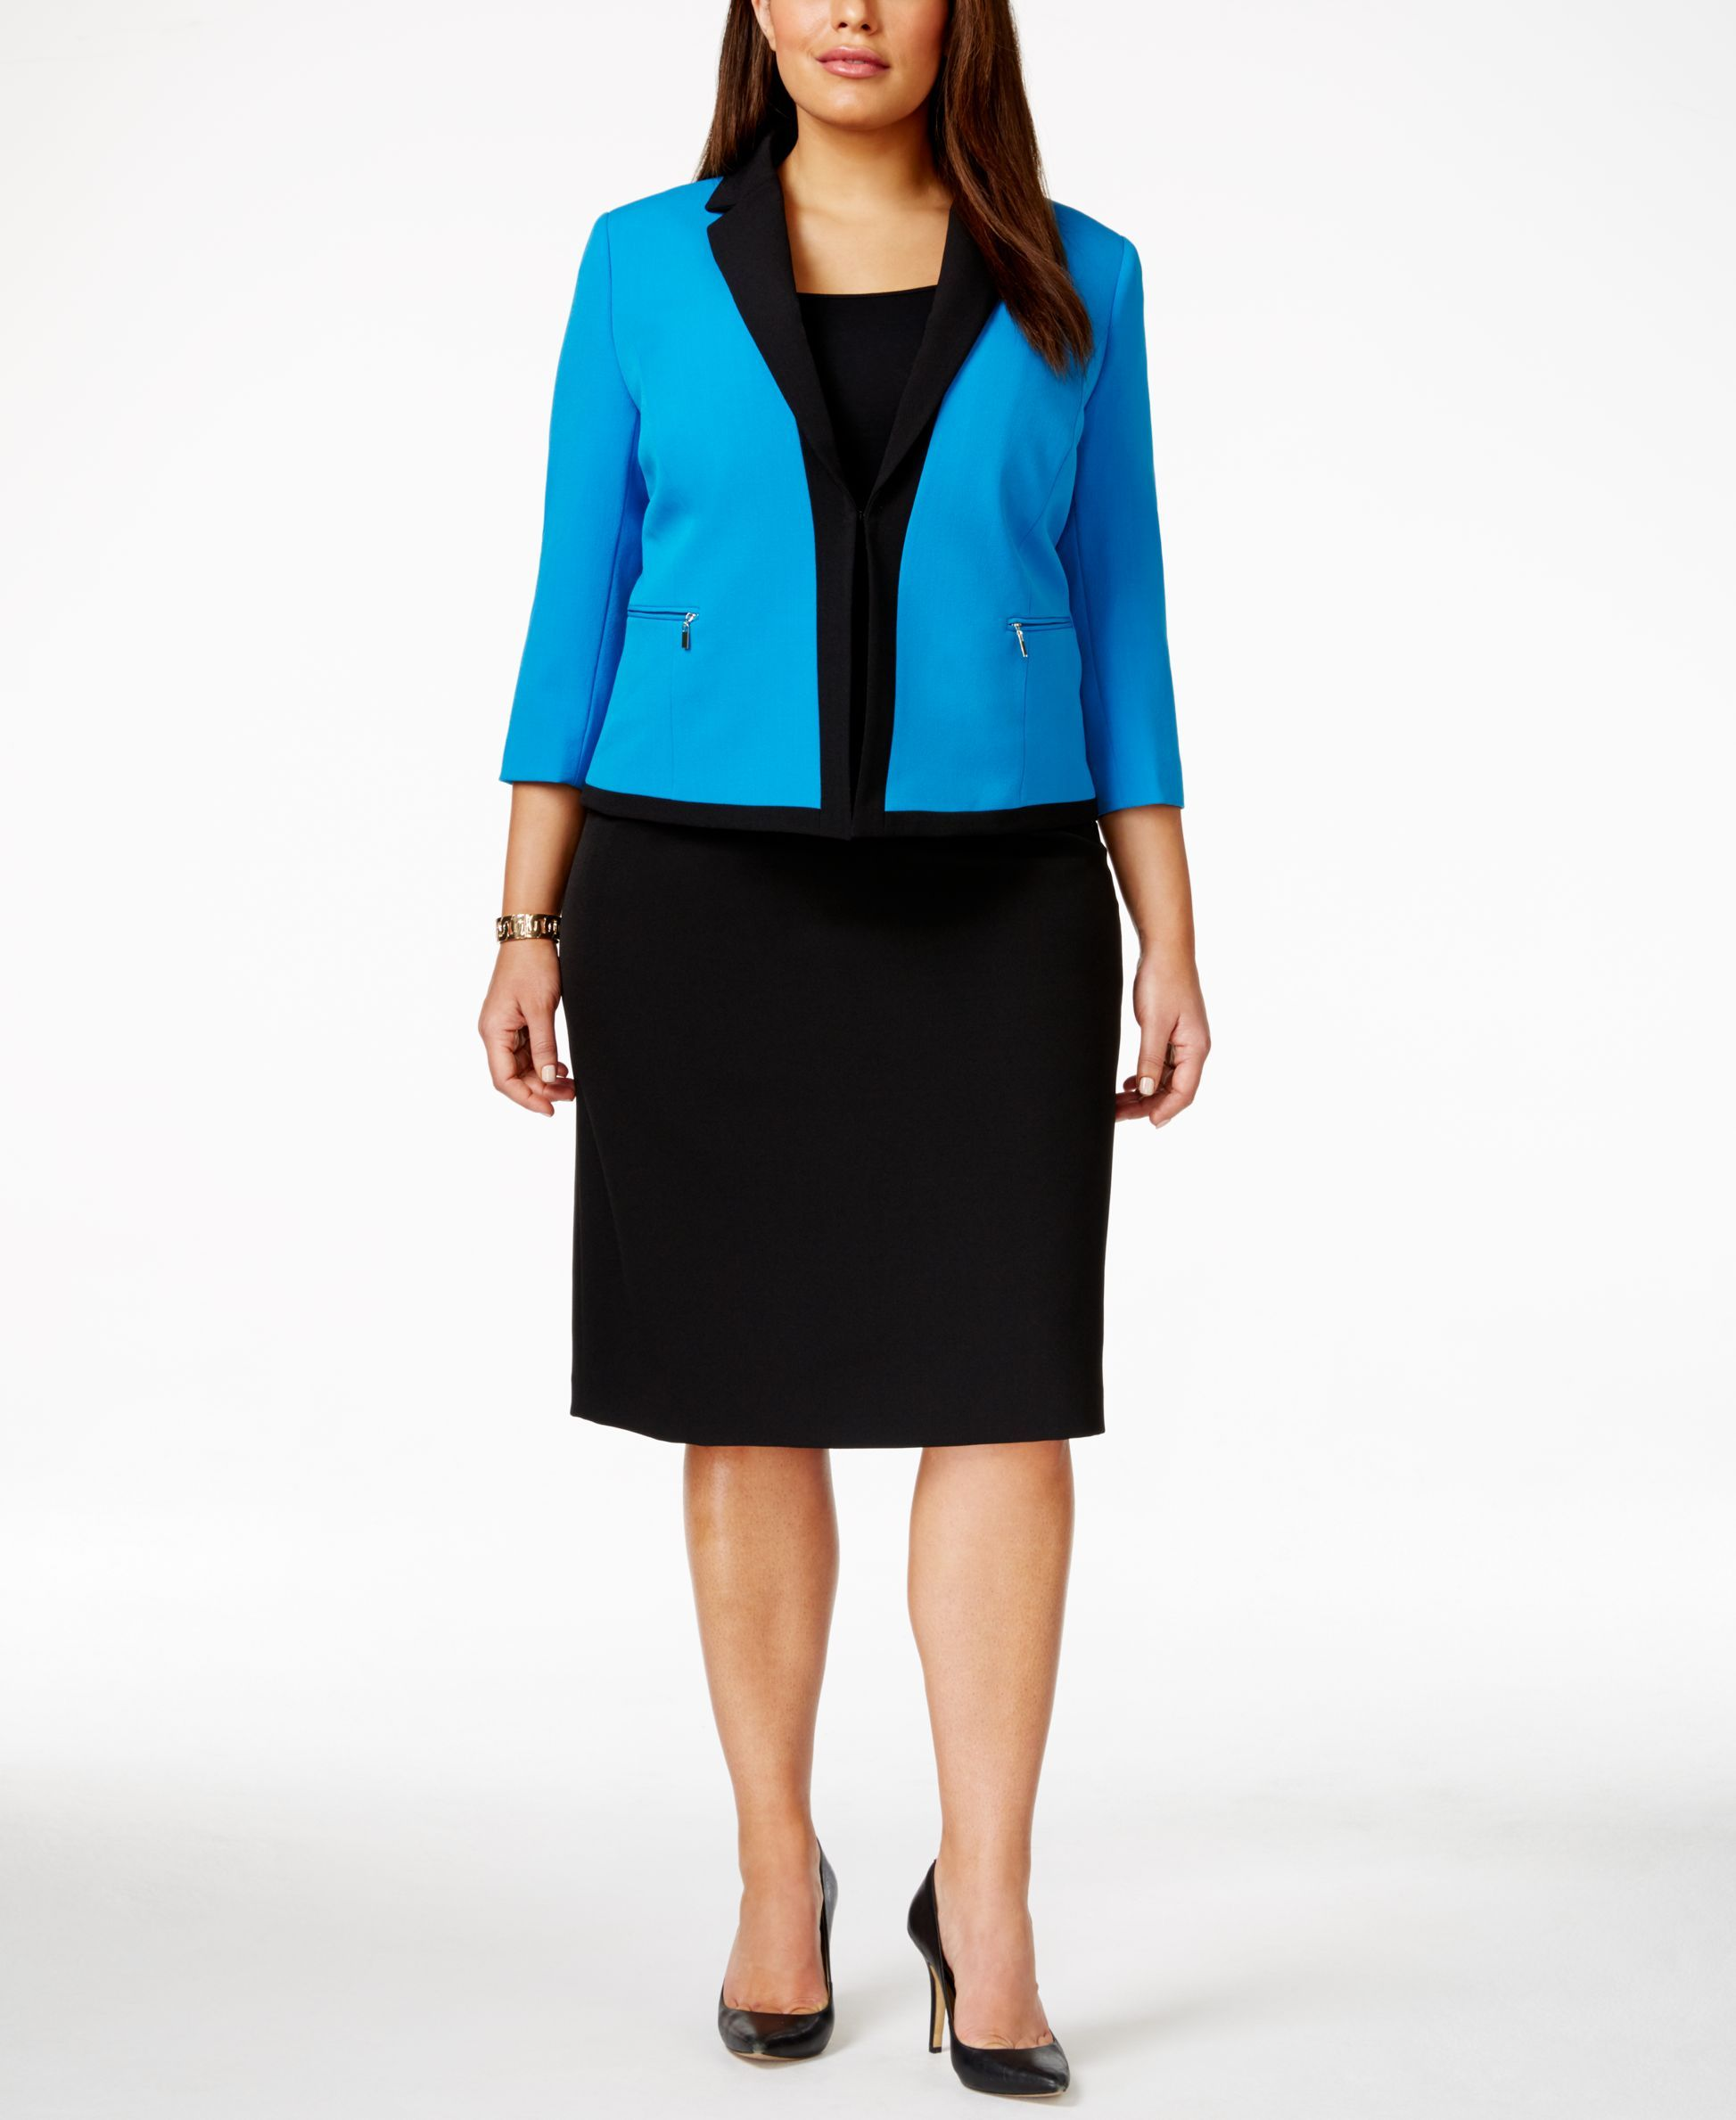 af18a36906295 Tahari Asl Plus Size Jacket Skirt Suit | Dresses and Things ...